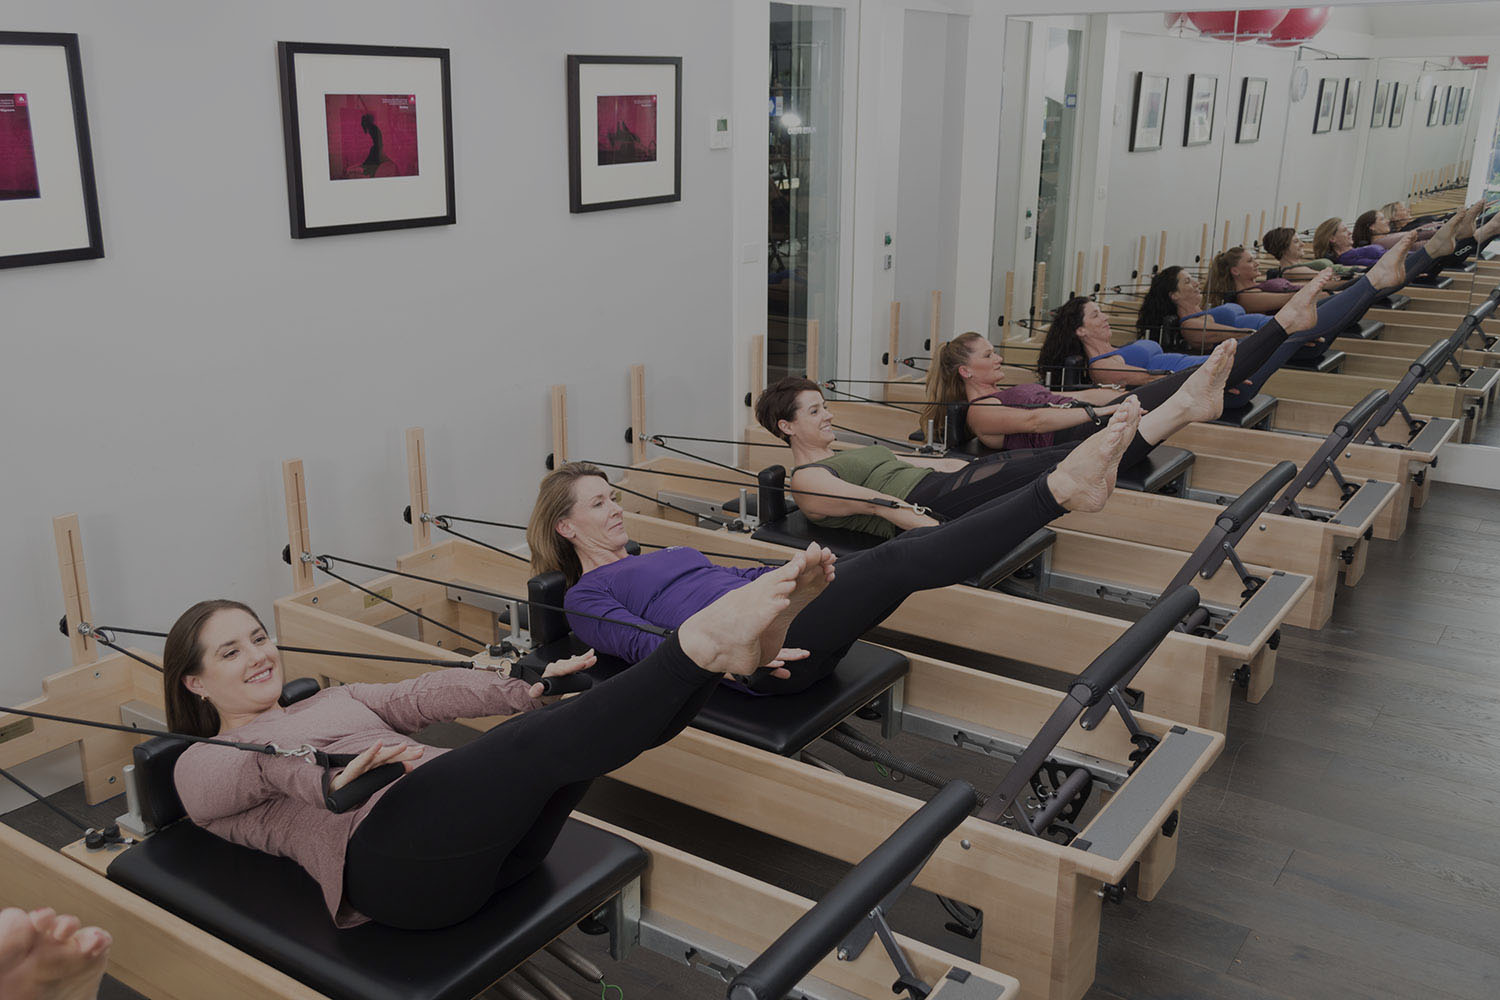 Reformer Classes - A fantastic session of toning, strengthening & challenging Pilates exercises - solely on the reformer - at varying levels, from beginners to experienced.